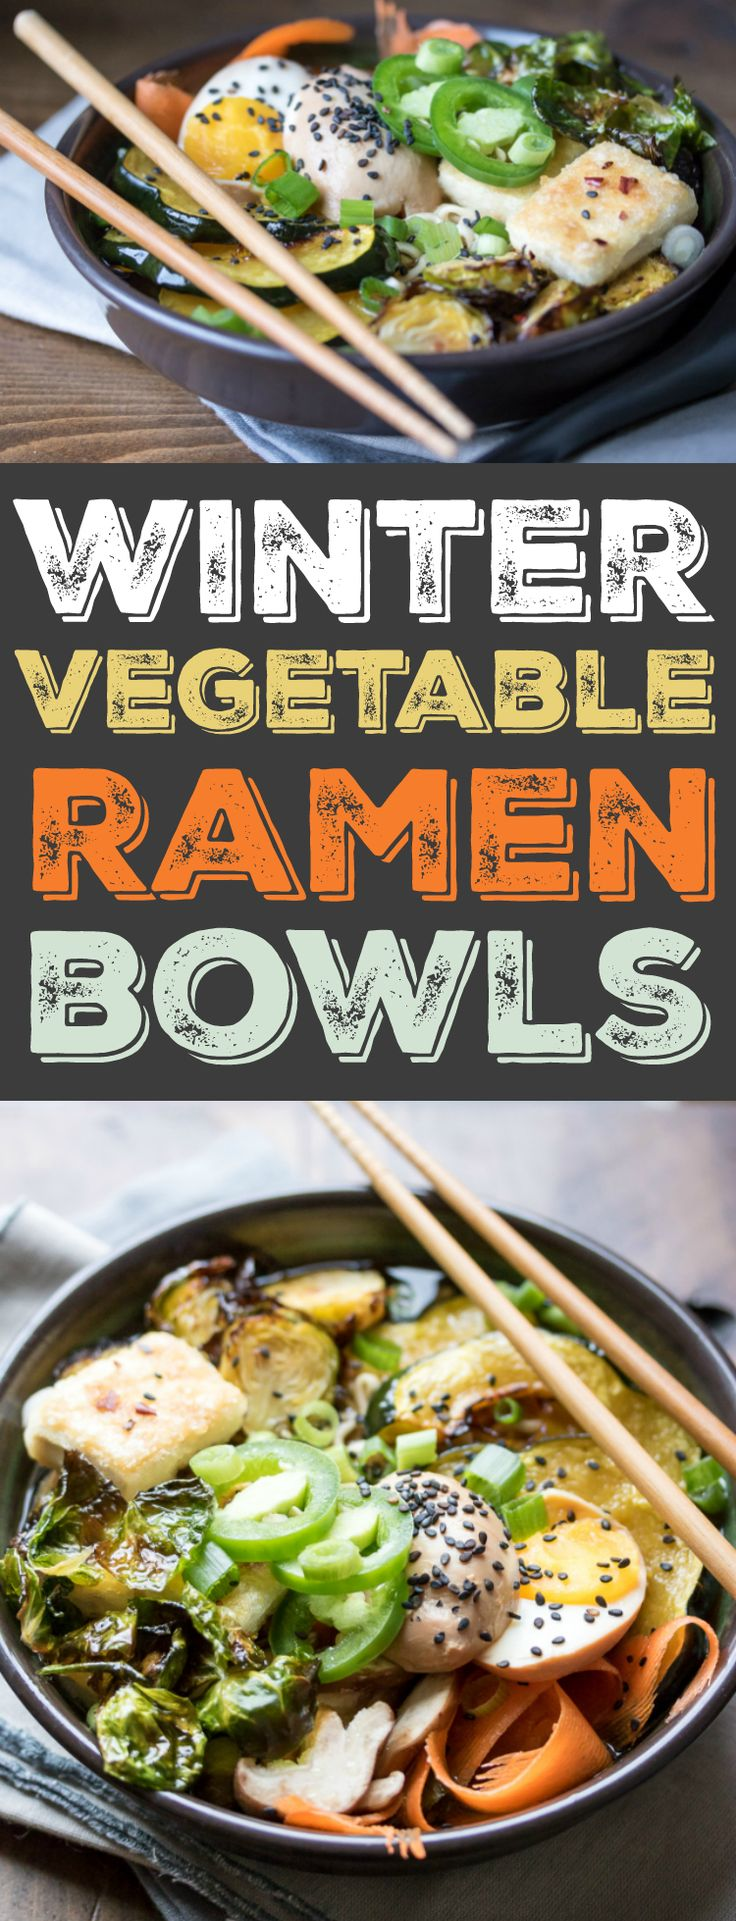 A hearty bowl of winter vegetable ramen is just the thing to warm you up! Make it on the stove top for a quick weeknight dinner, or prepare the broth in the slow cooker ahead of time (and make some soft boiled ramen eggs!)